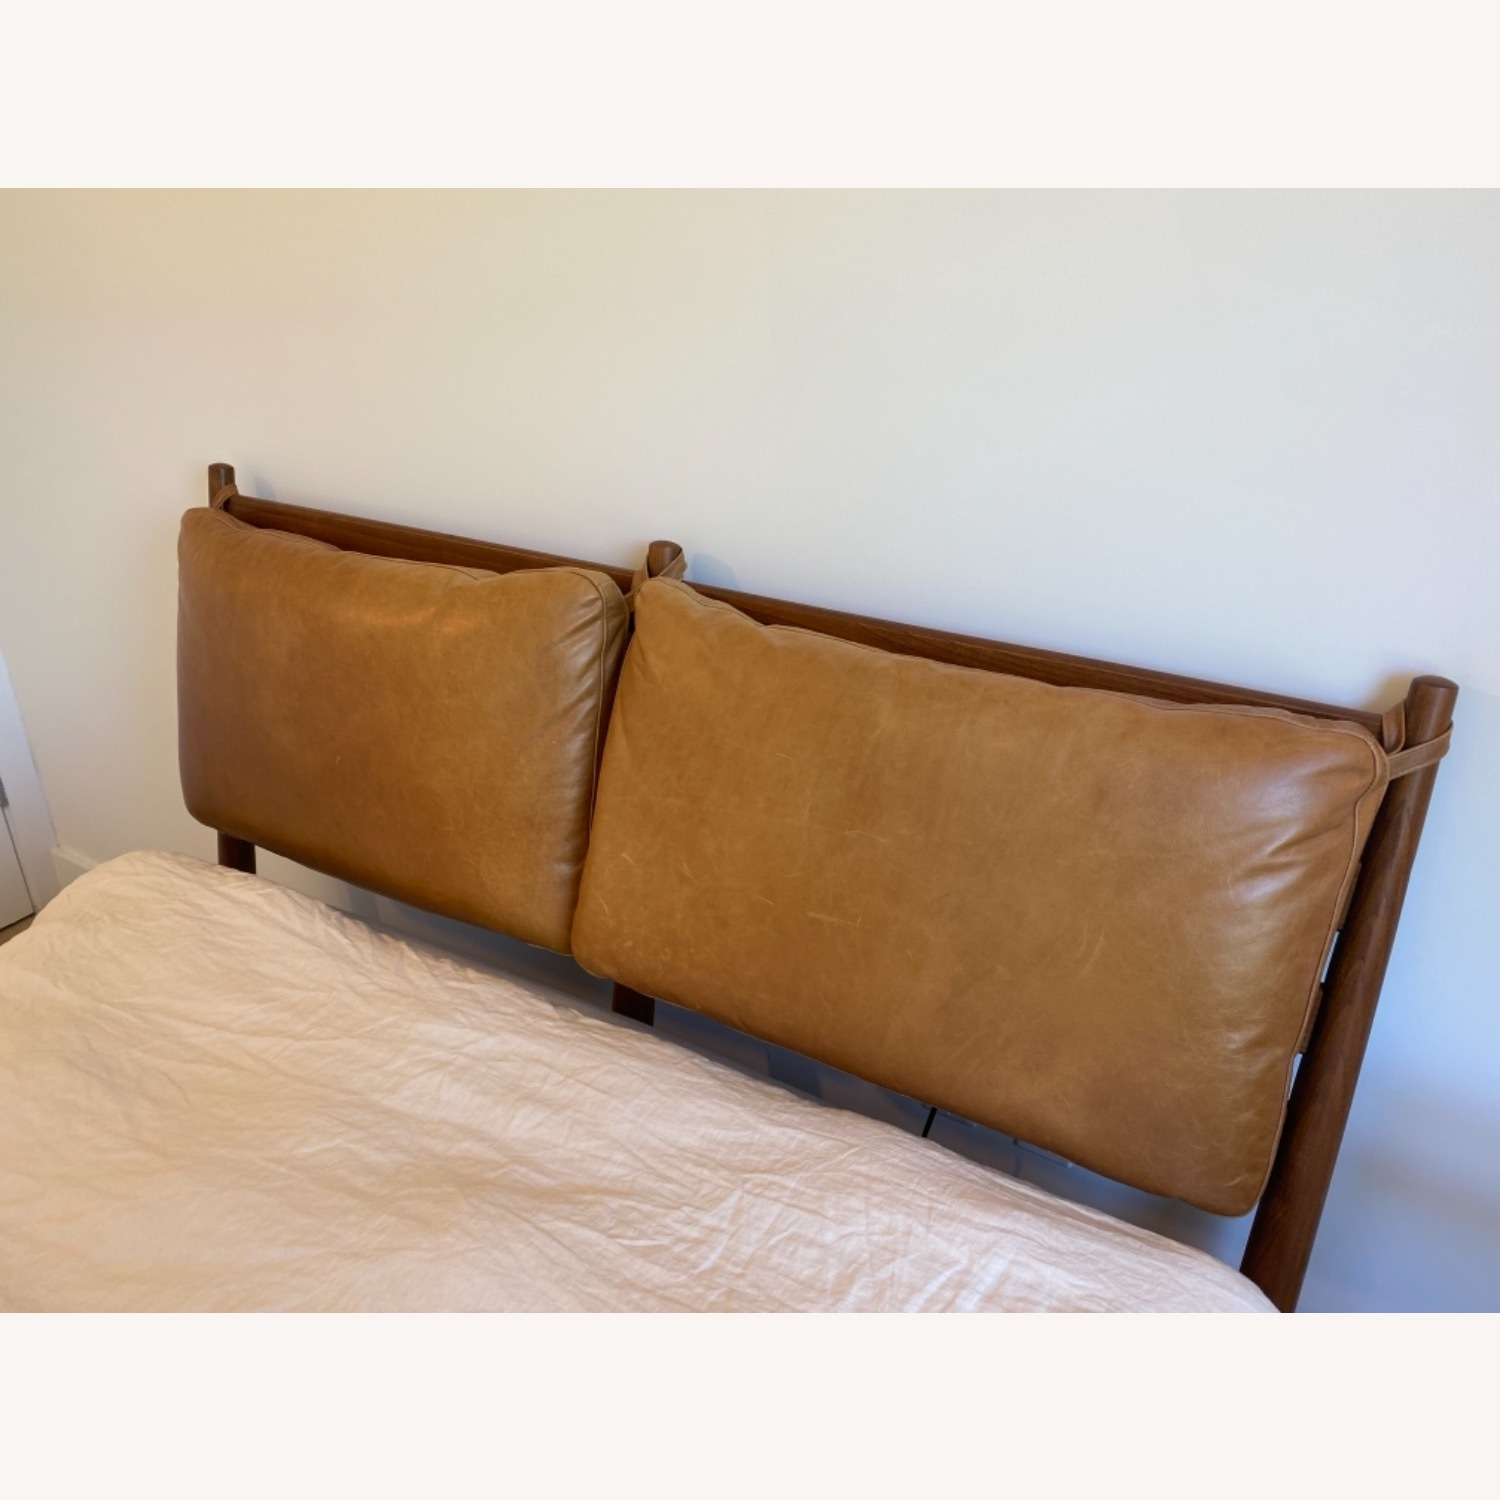 West Elm Arne Bed with Leather Cushions - image-4